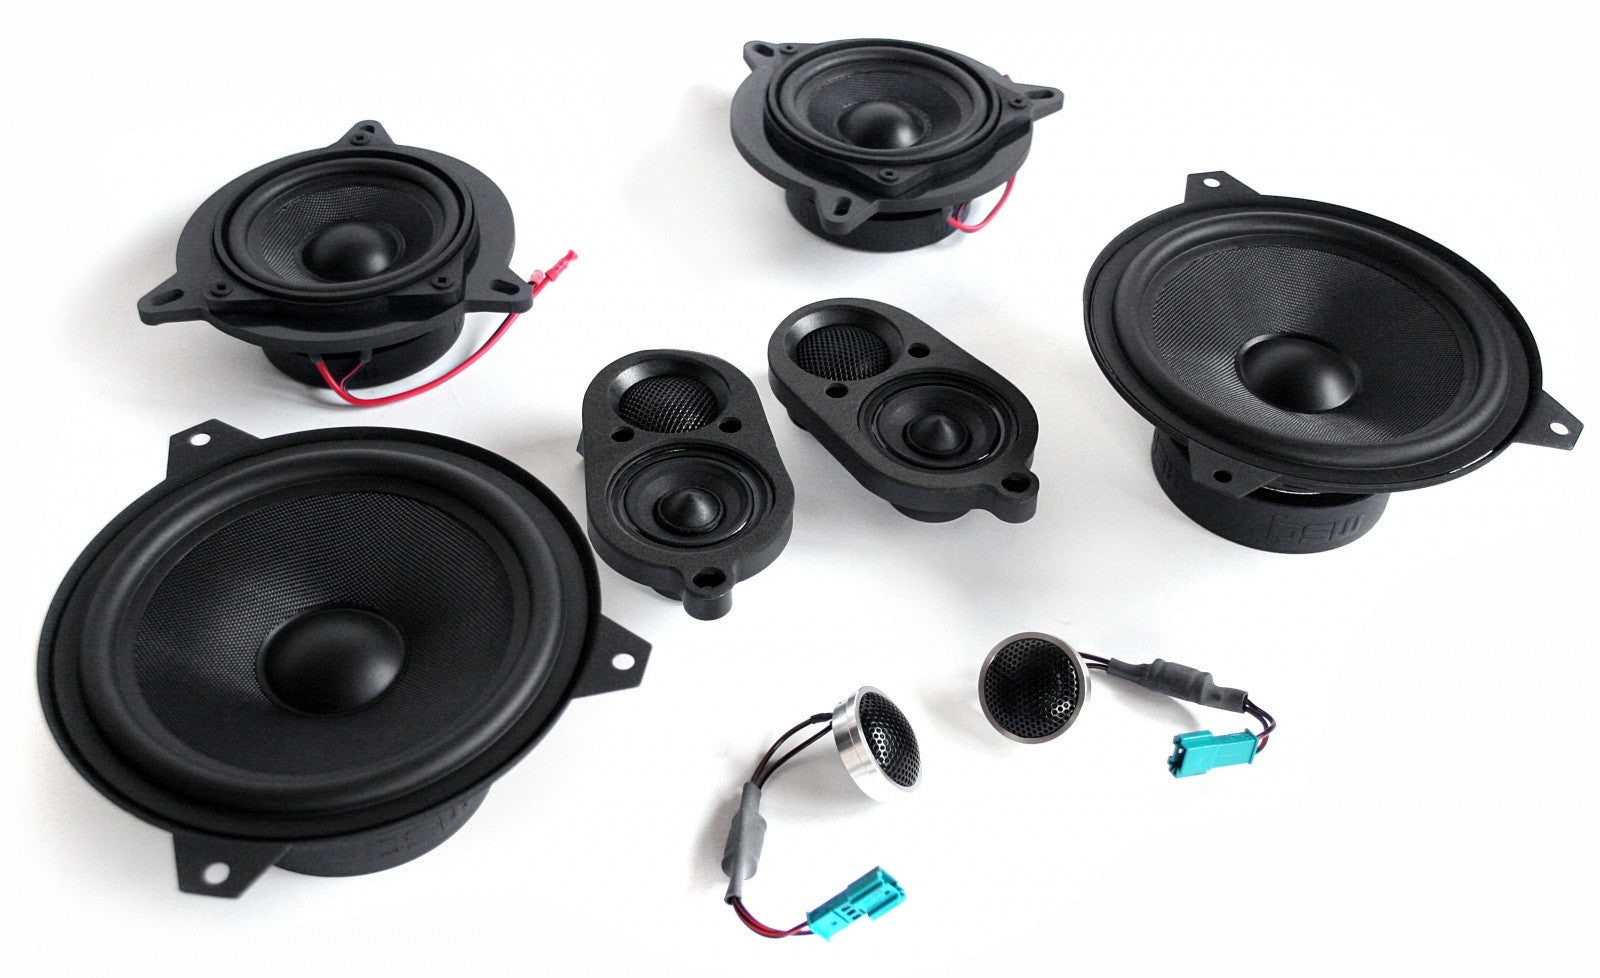 Bmw Speakers Mb Quart Qm2003 Amazoncouk Electronics Stage One Speaker Upgrade Kit Engineered For Your Specific 1600x978